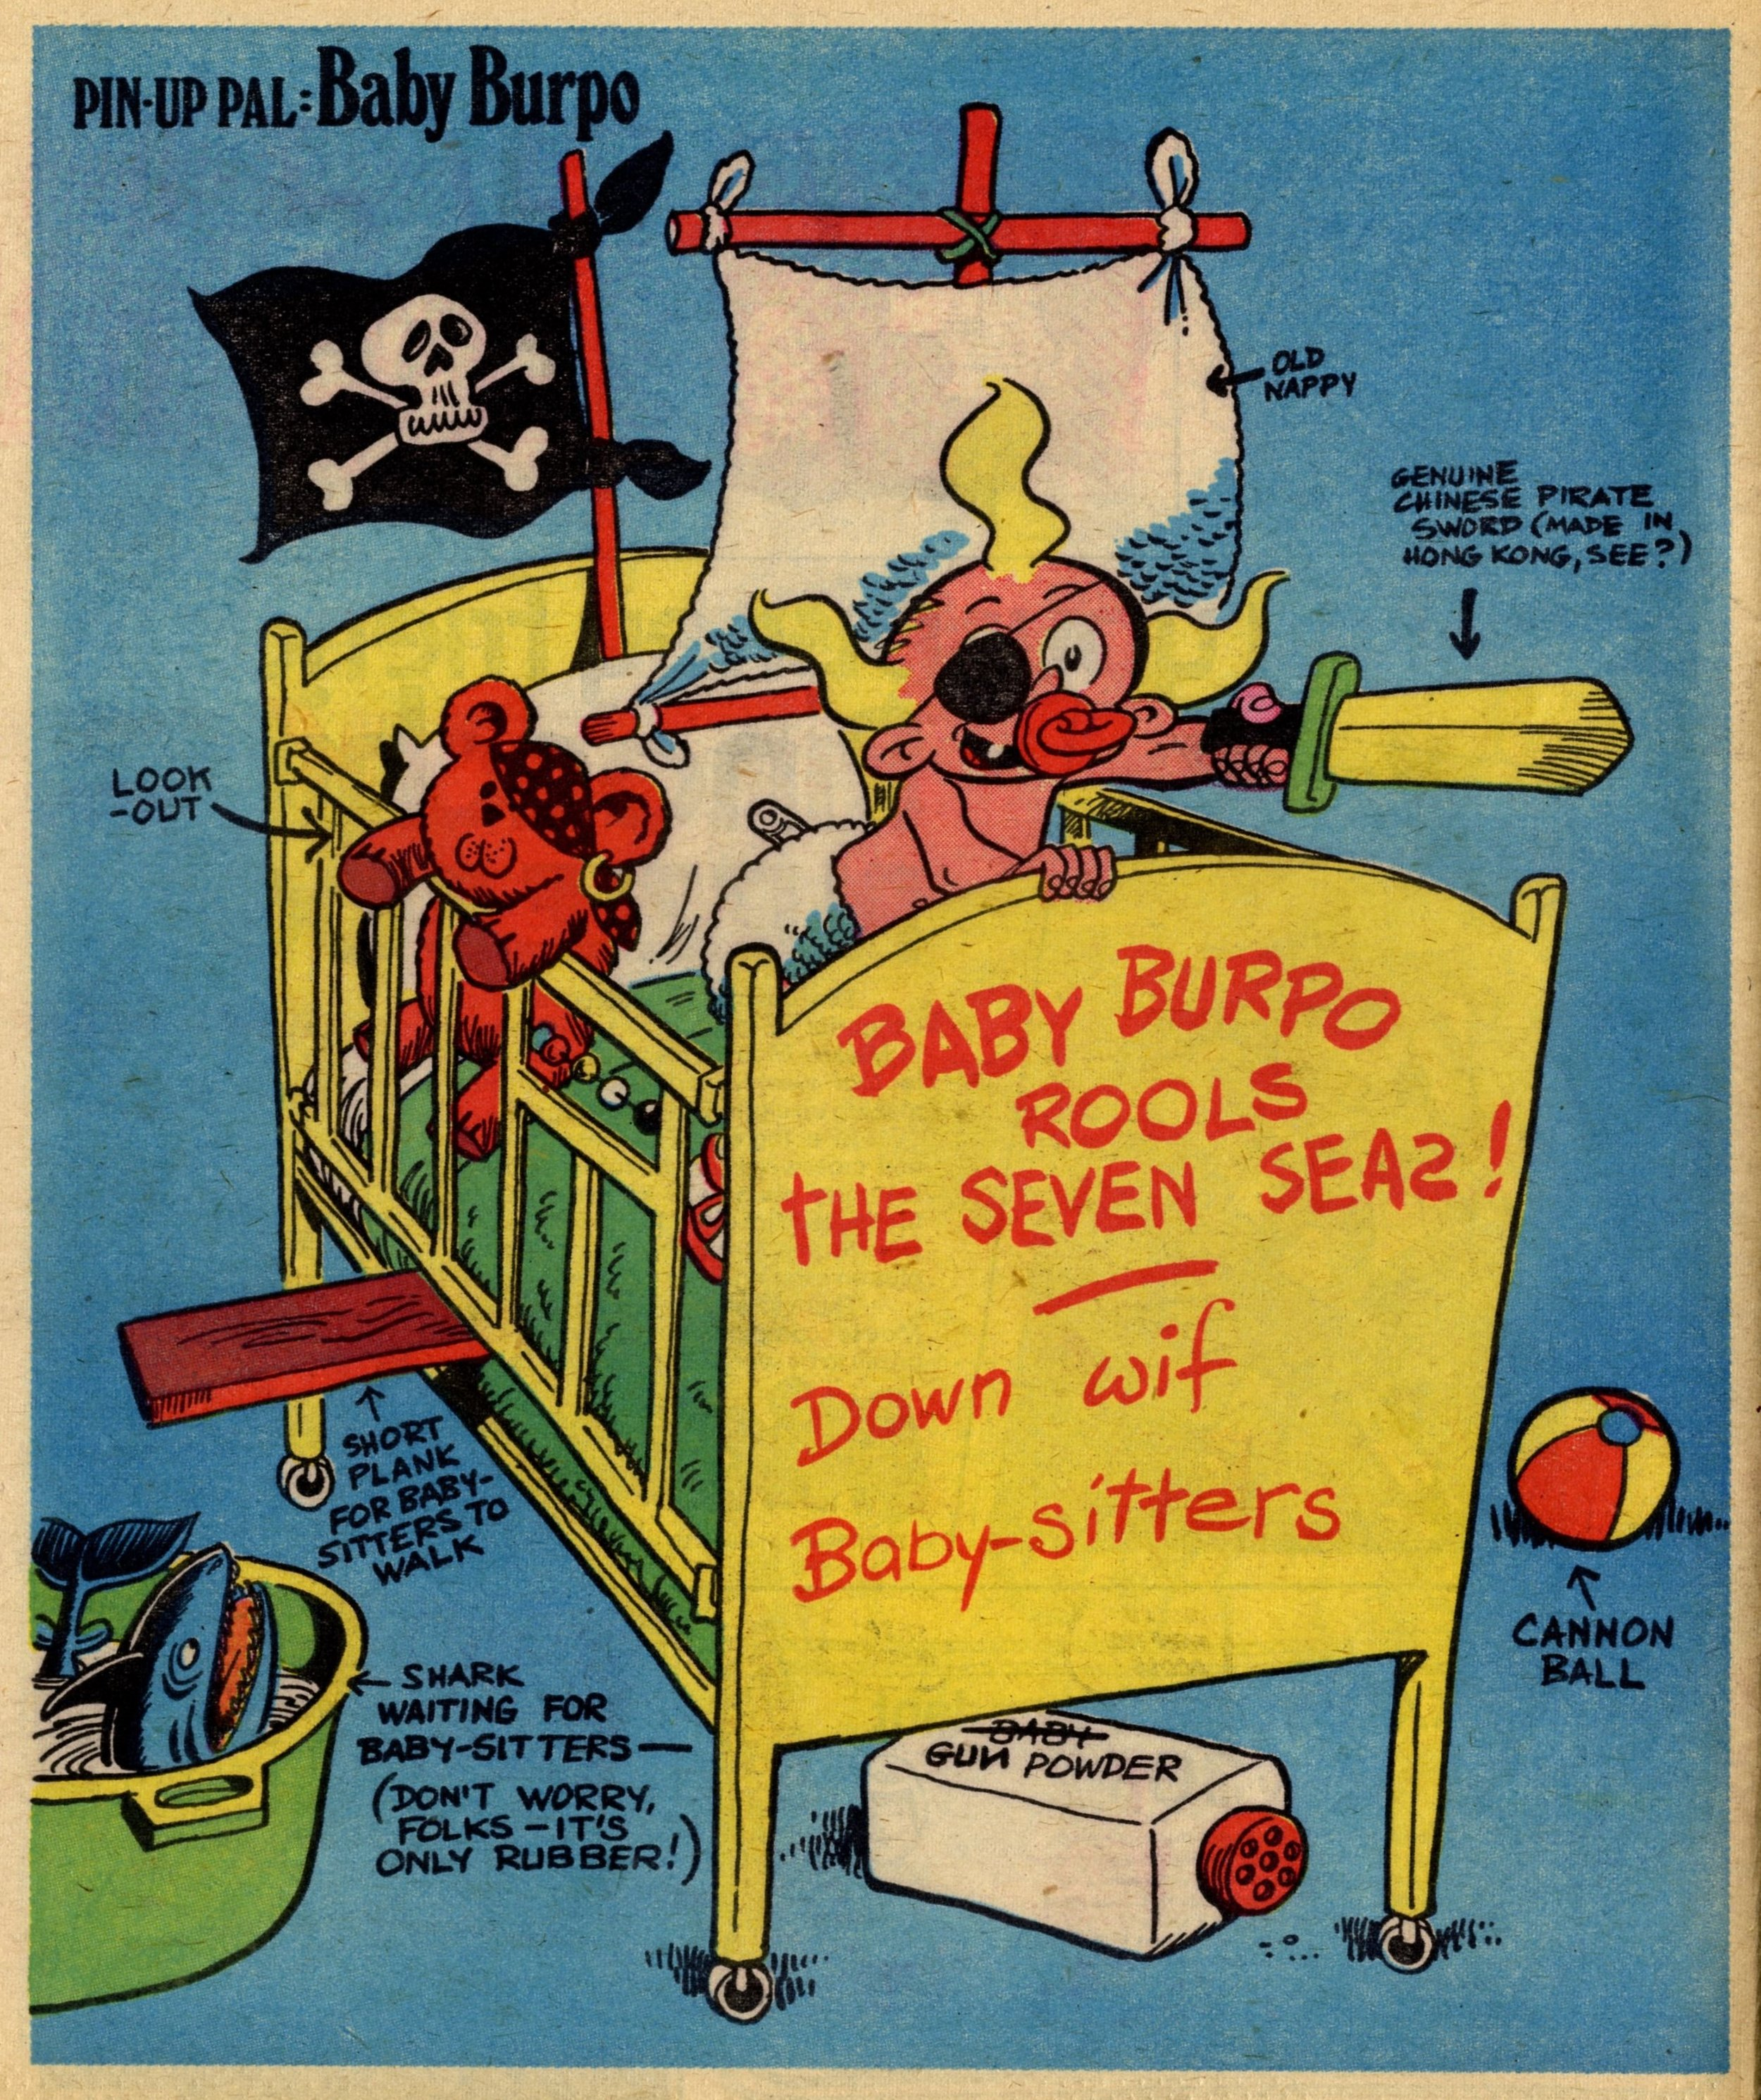 Pin-up Pal: Baby Burpo (artist Frank McDiarmid), 18 March 1978